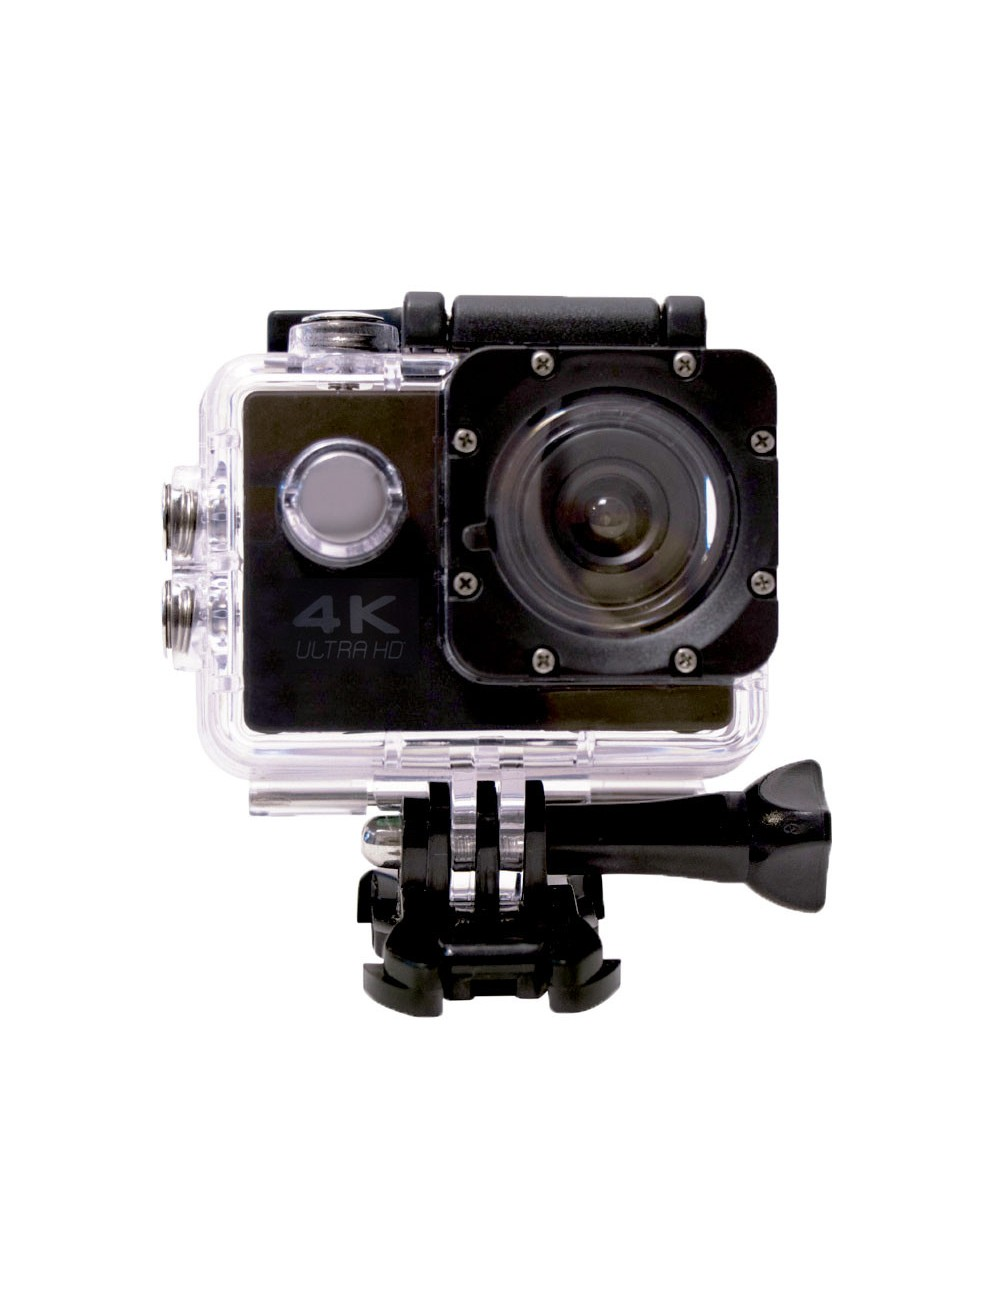 4k Wifi Action Cam Buy Online Casco Antiguo Shop Sport Full Hd With Remote You Will Get The Highest Quality Footage This Camera Connect Your Sk8 Through Look App Via Wi Fi Also Includes A Submersible Housing